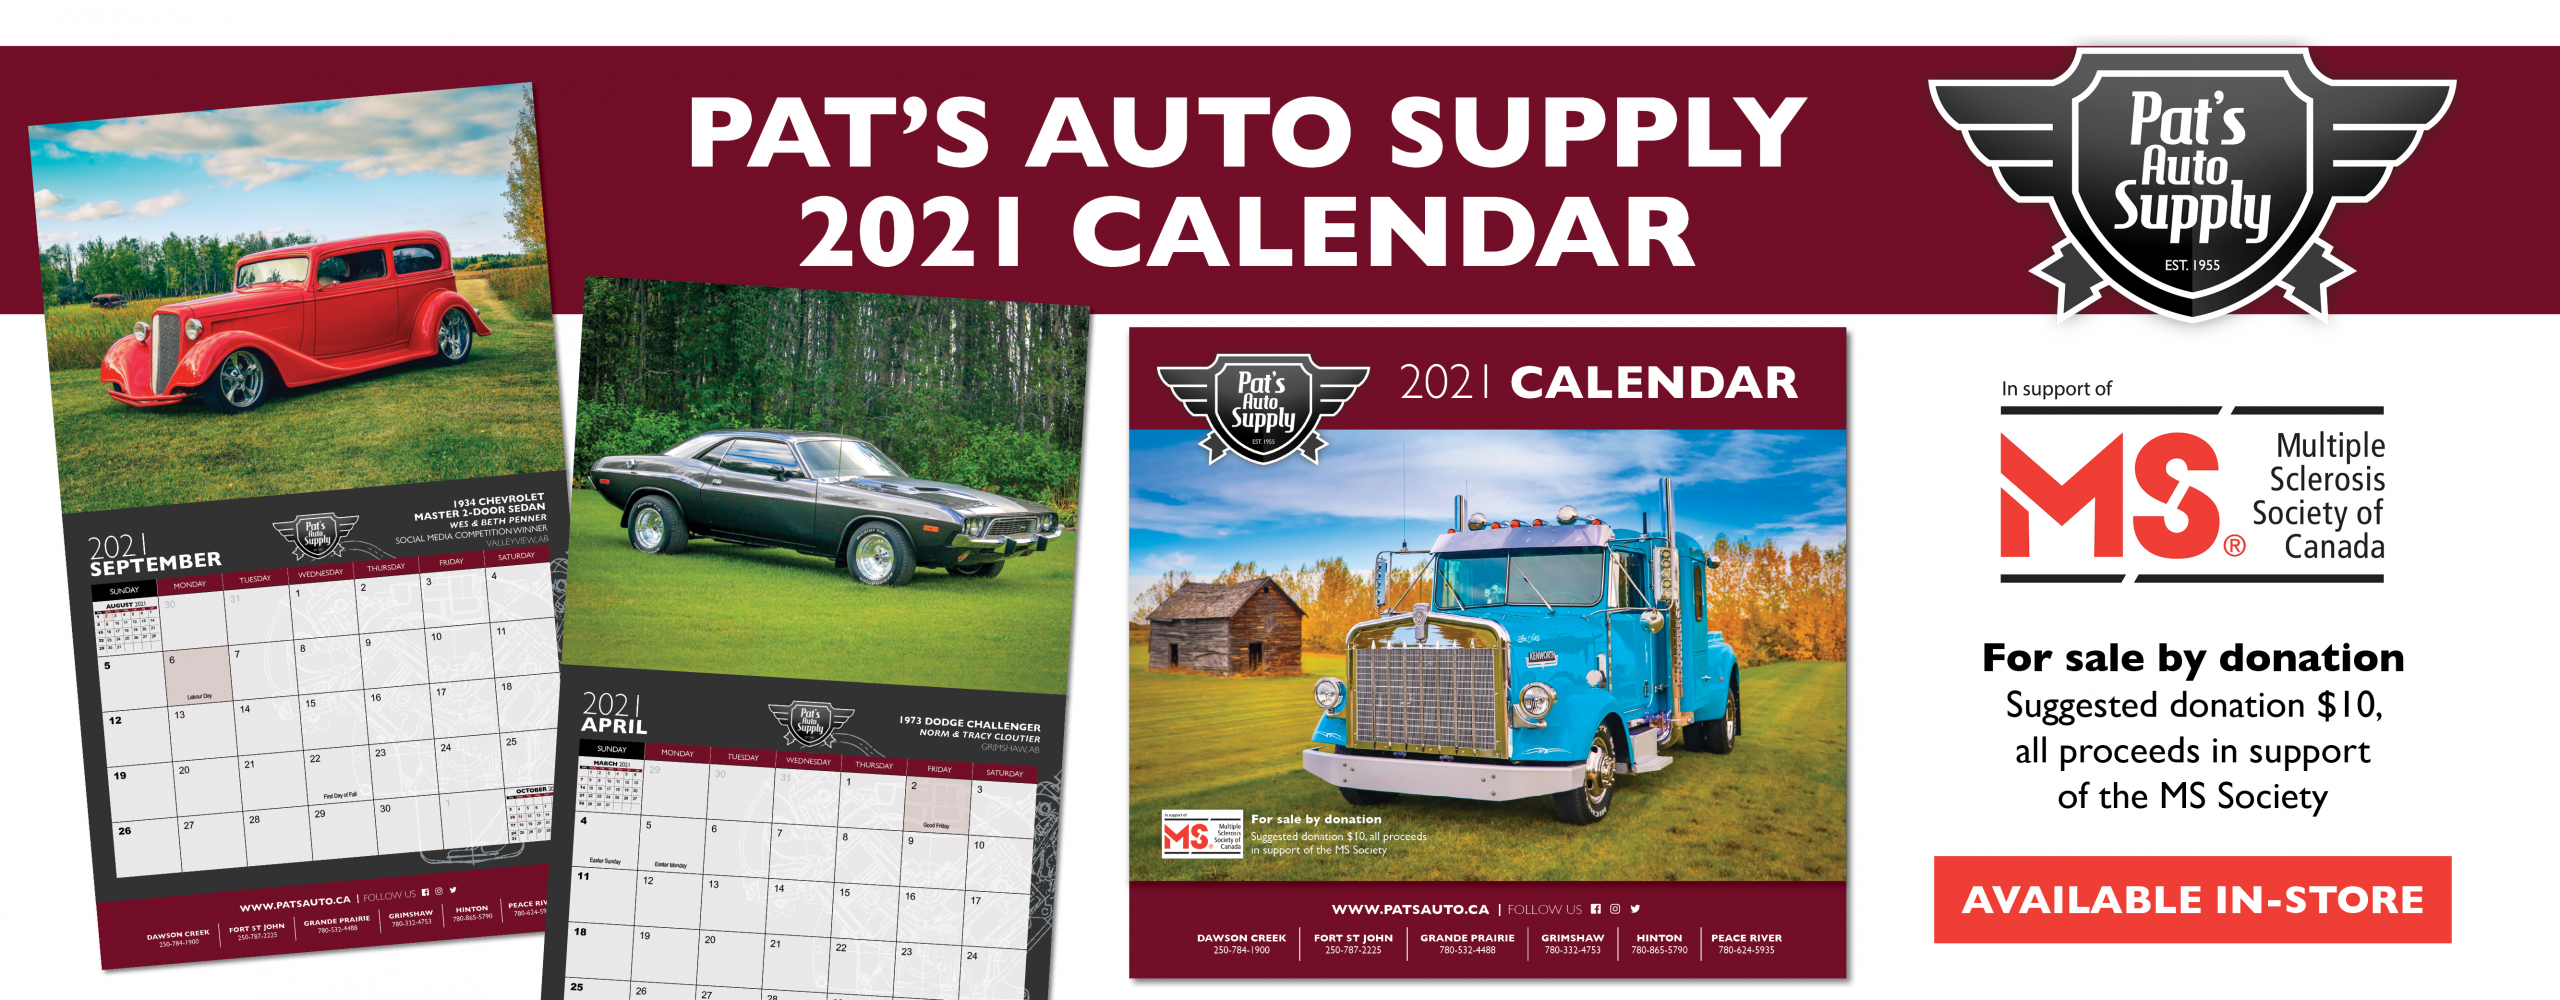 Pat's Auto Supply 2021 Calendars